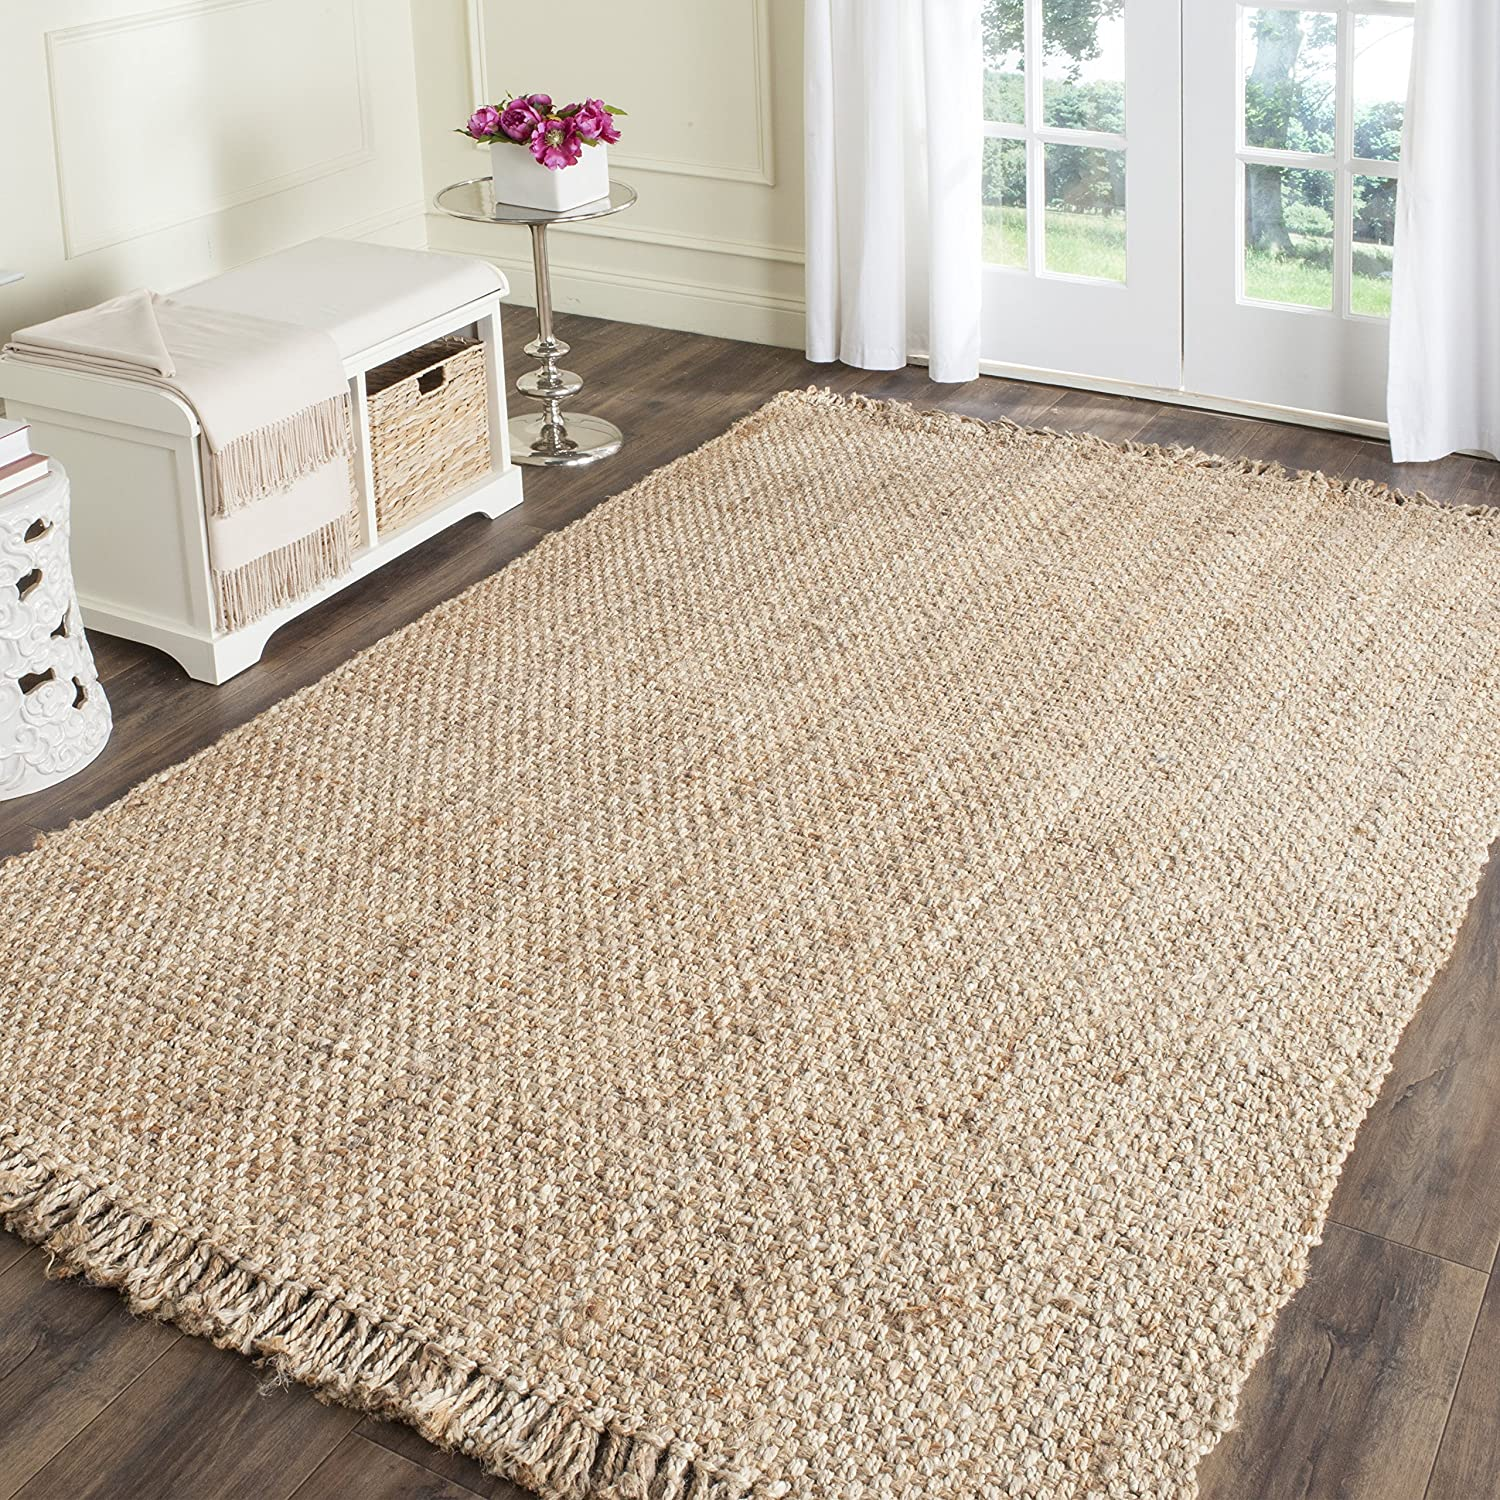 Amazon com safavieh natural fiber collection nf467a hand woven natural jute area rug 5 x 8 kitchen dining